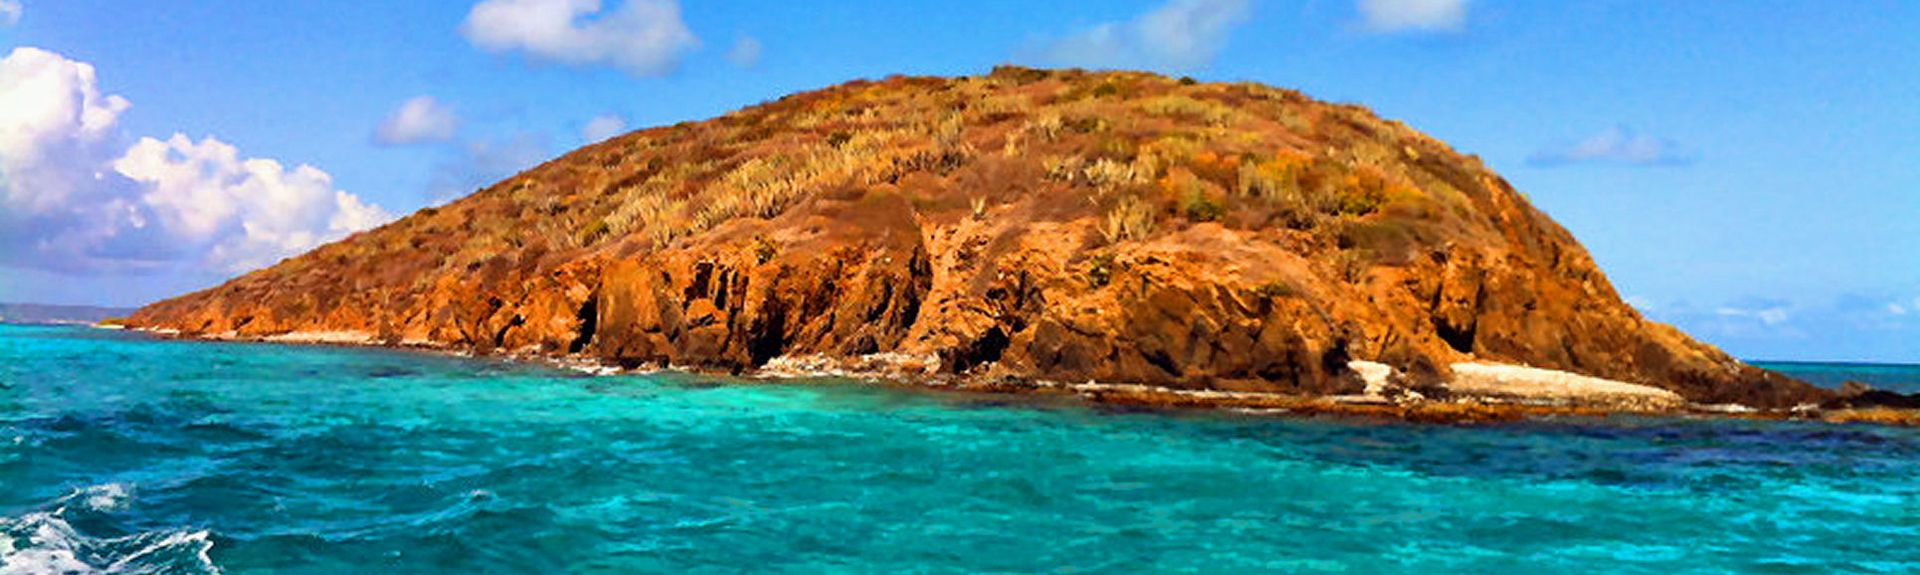 Colony Cove (Estate Golden Rock, St. Croix, U.S. Virgin Islands)